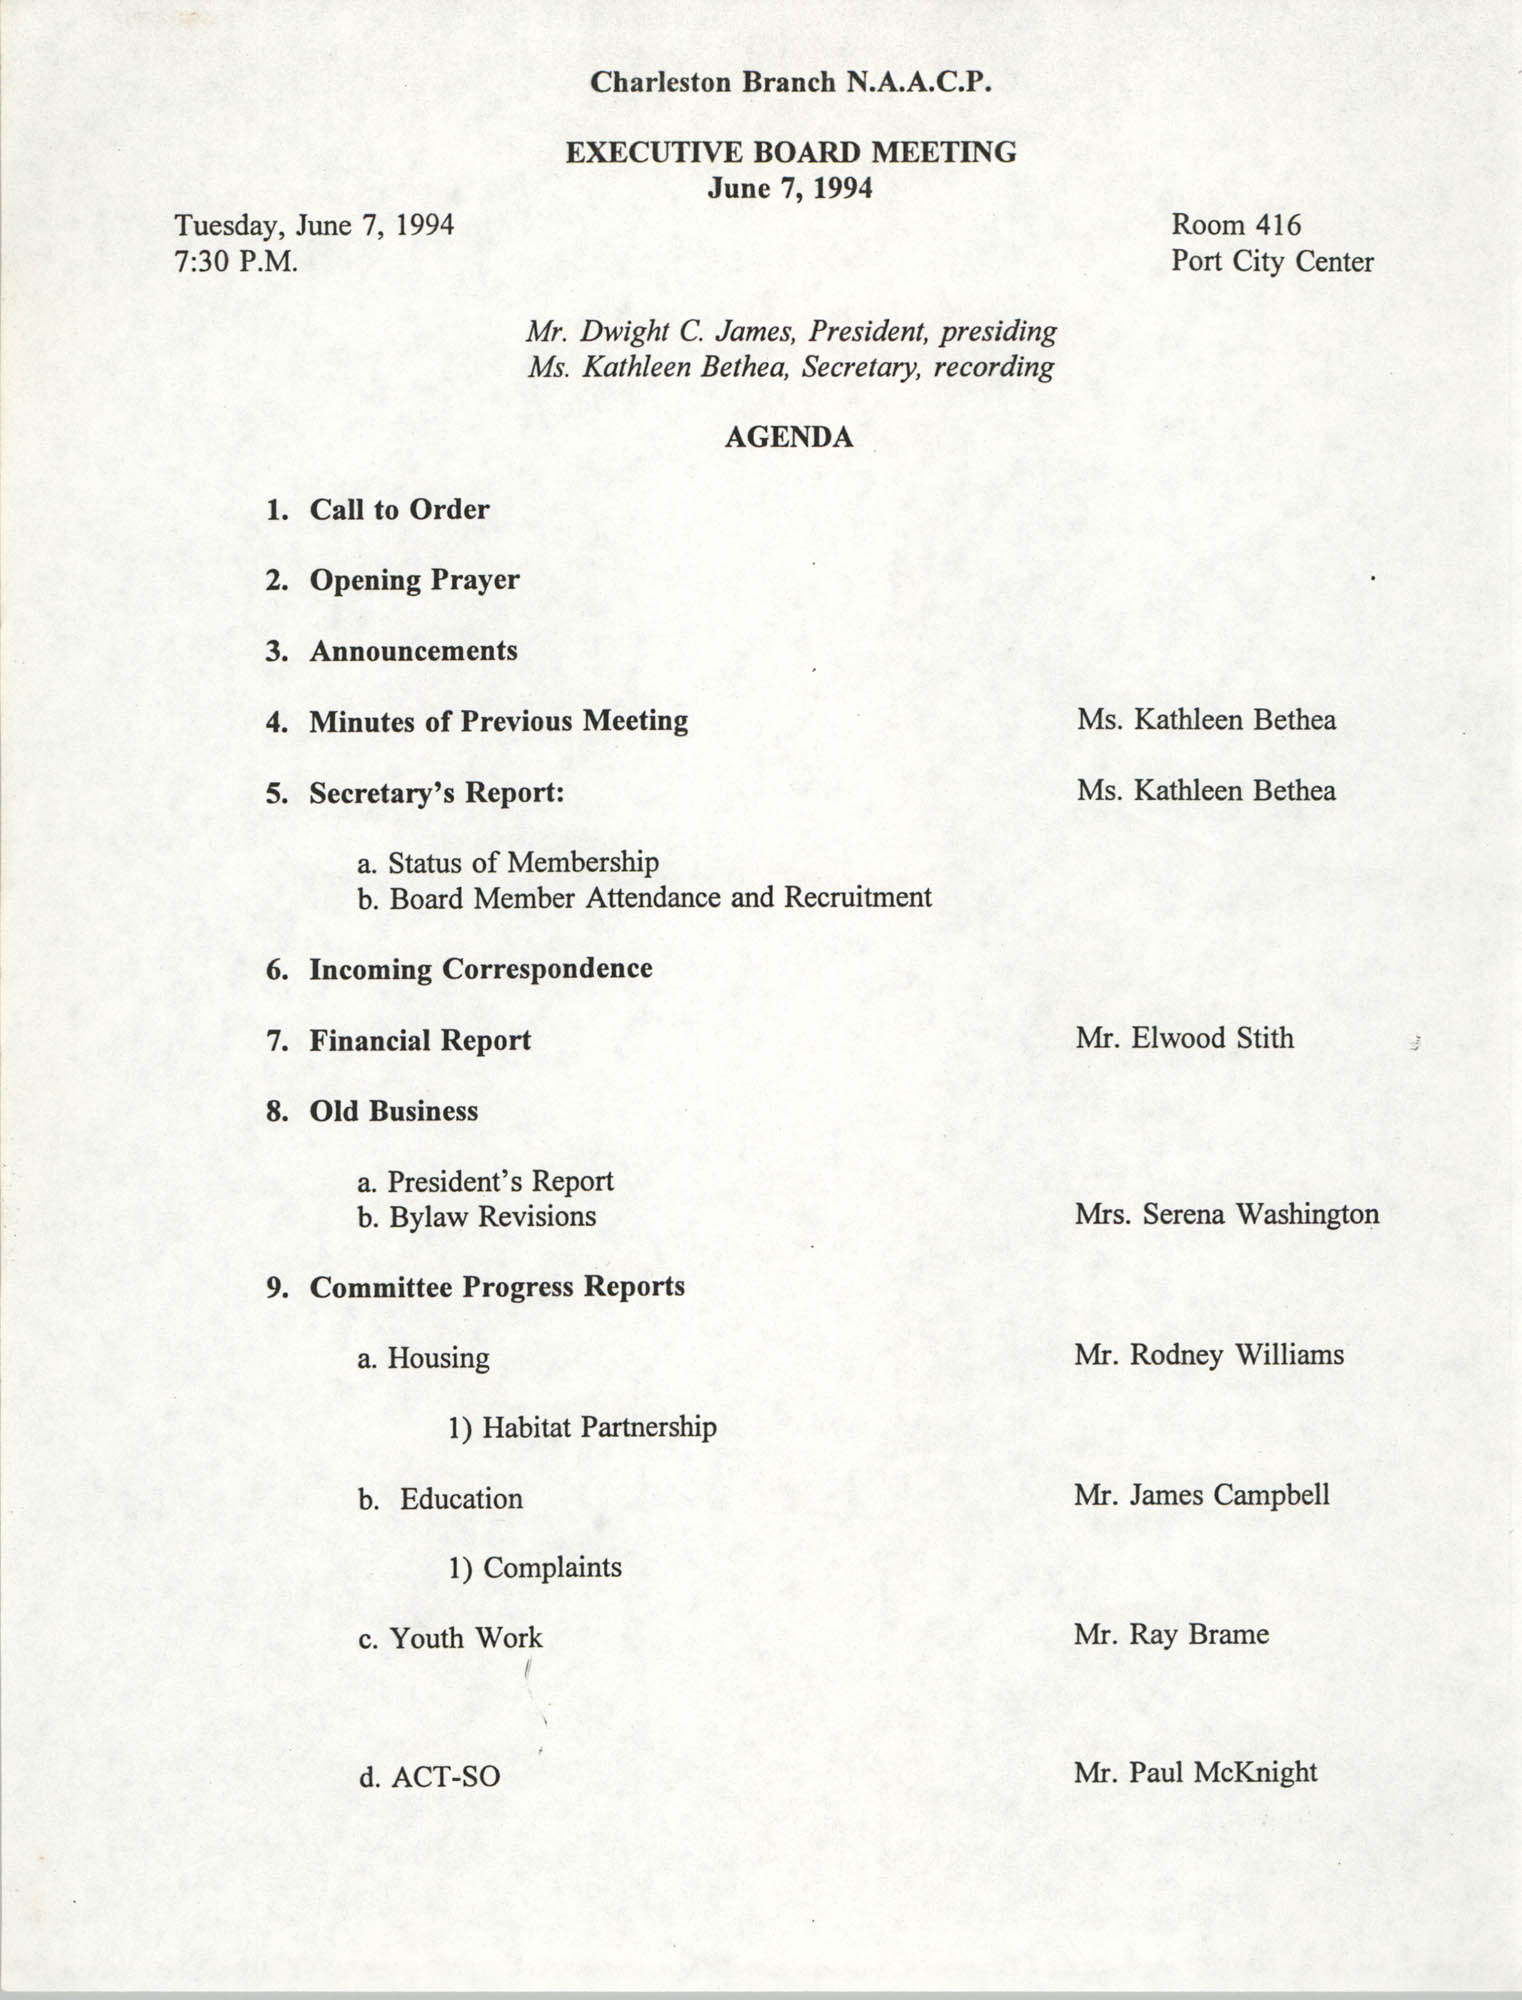 Agenda, Charleston Branch of the NAACP Branch, Executive Board Meeting, June 7, 1994